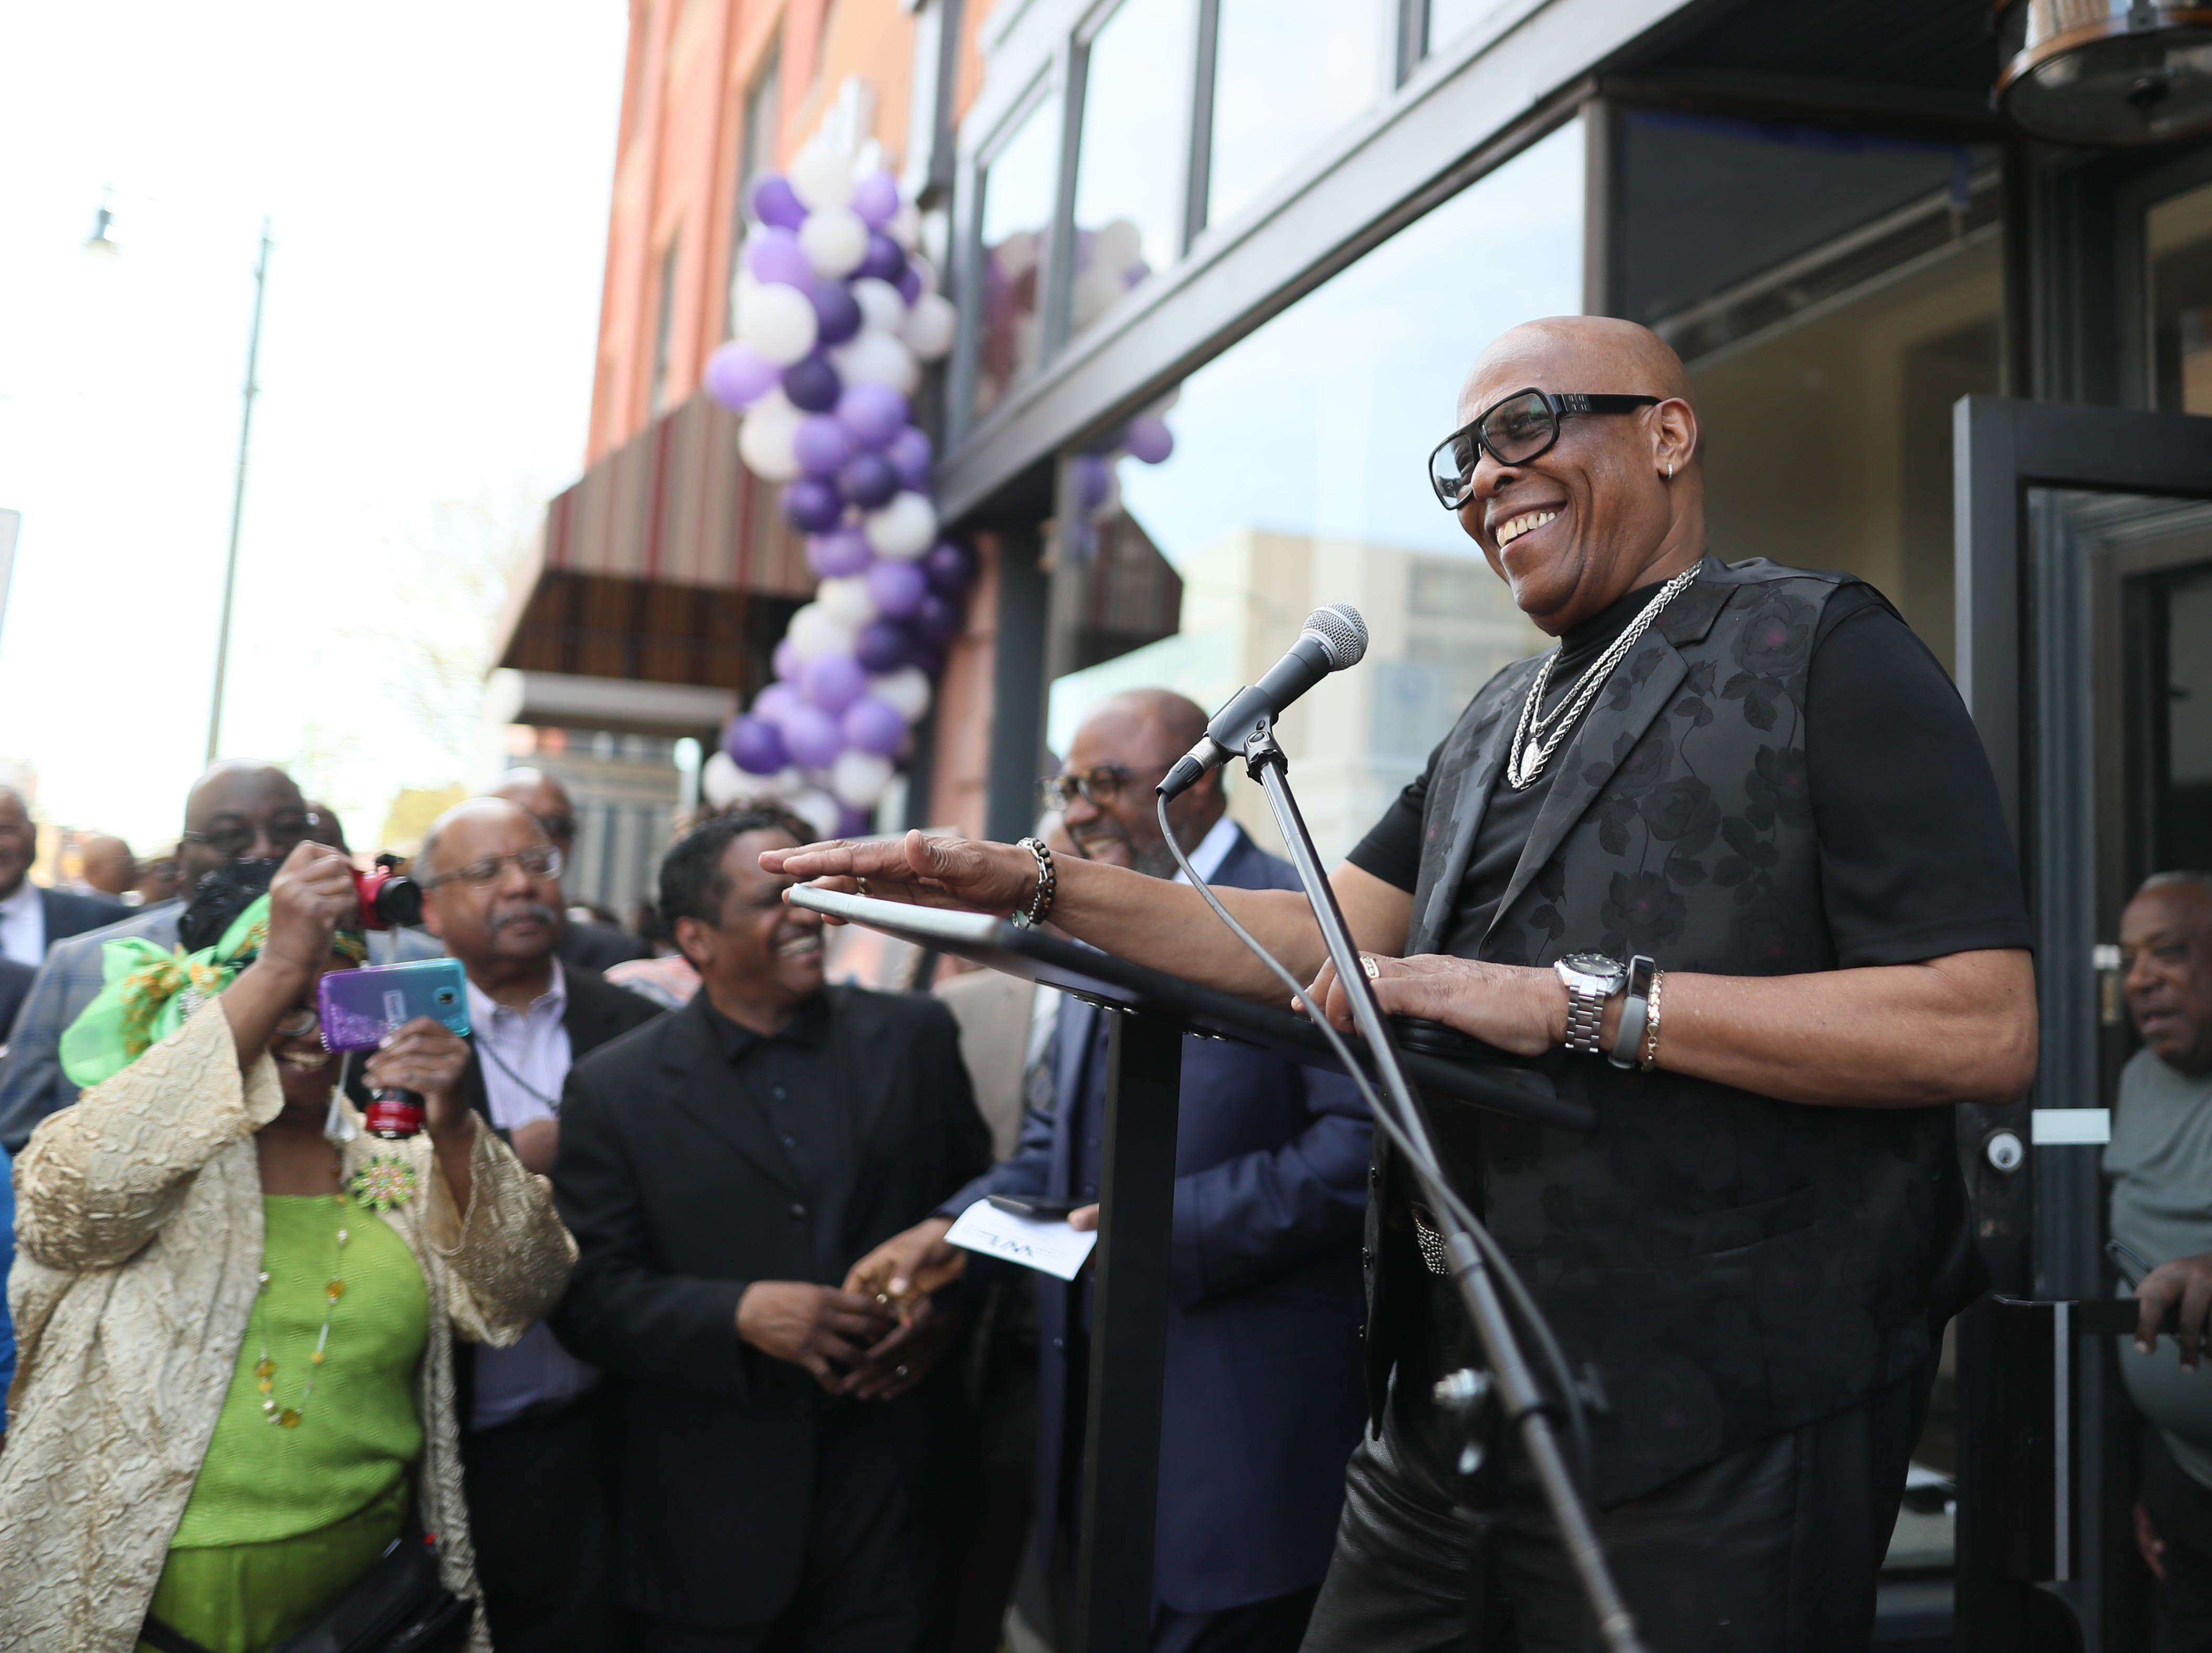 David Porter speaks to people gathered on South Main Street downtown as the the Adler Building is renamed 'The W.L.' in honor of his late brother, Bishop W.L. Porter, on Wednesday, April 10, 2019.